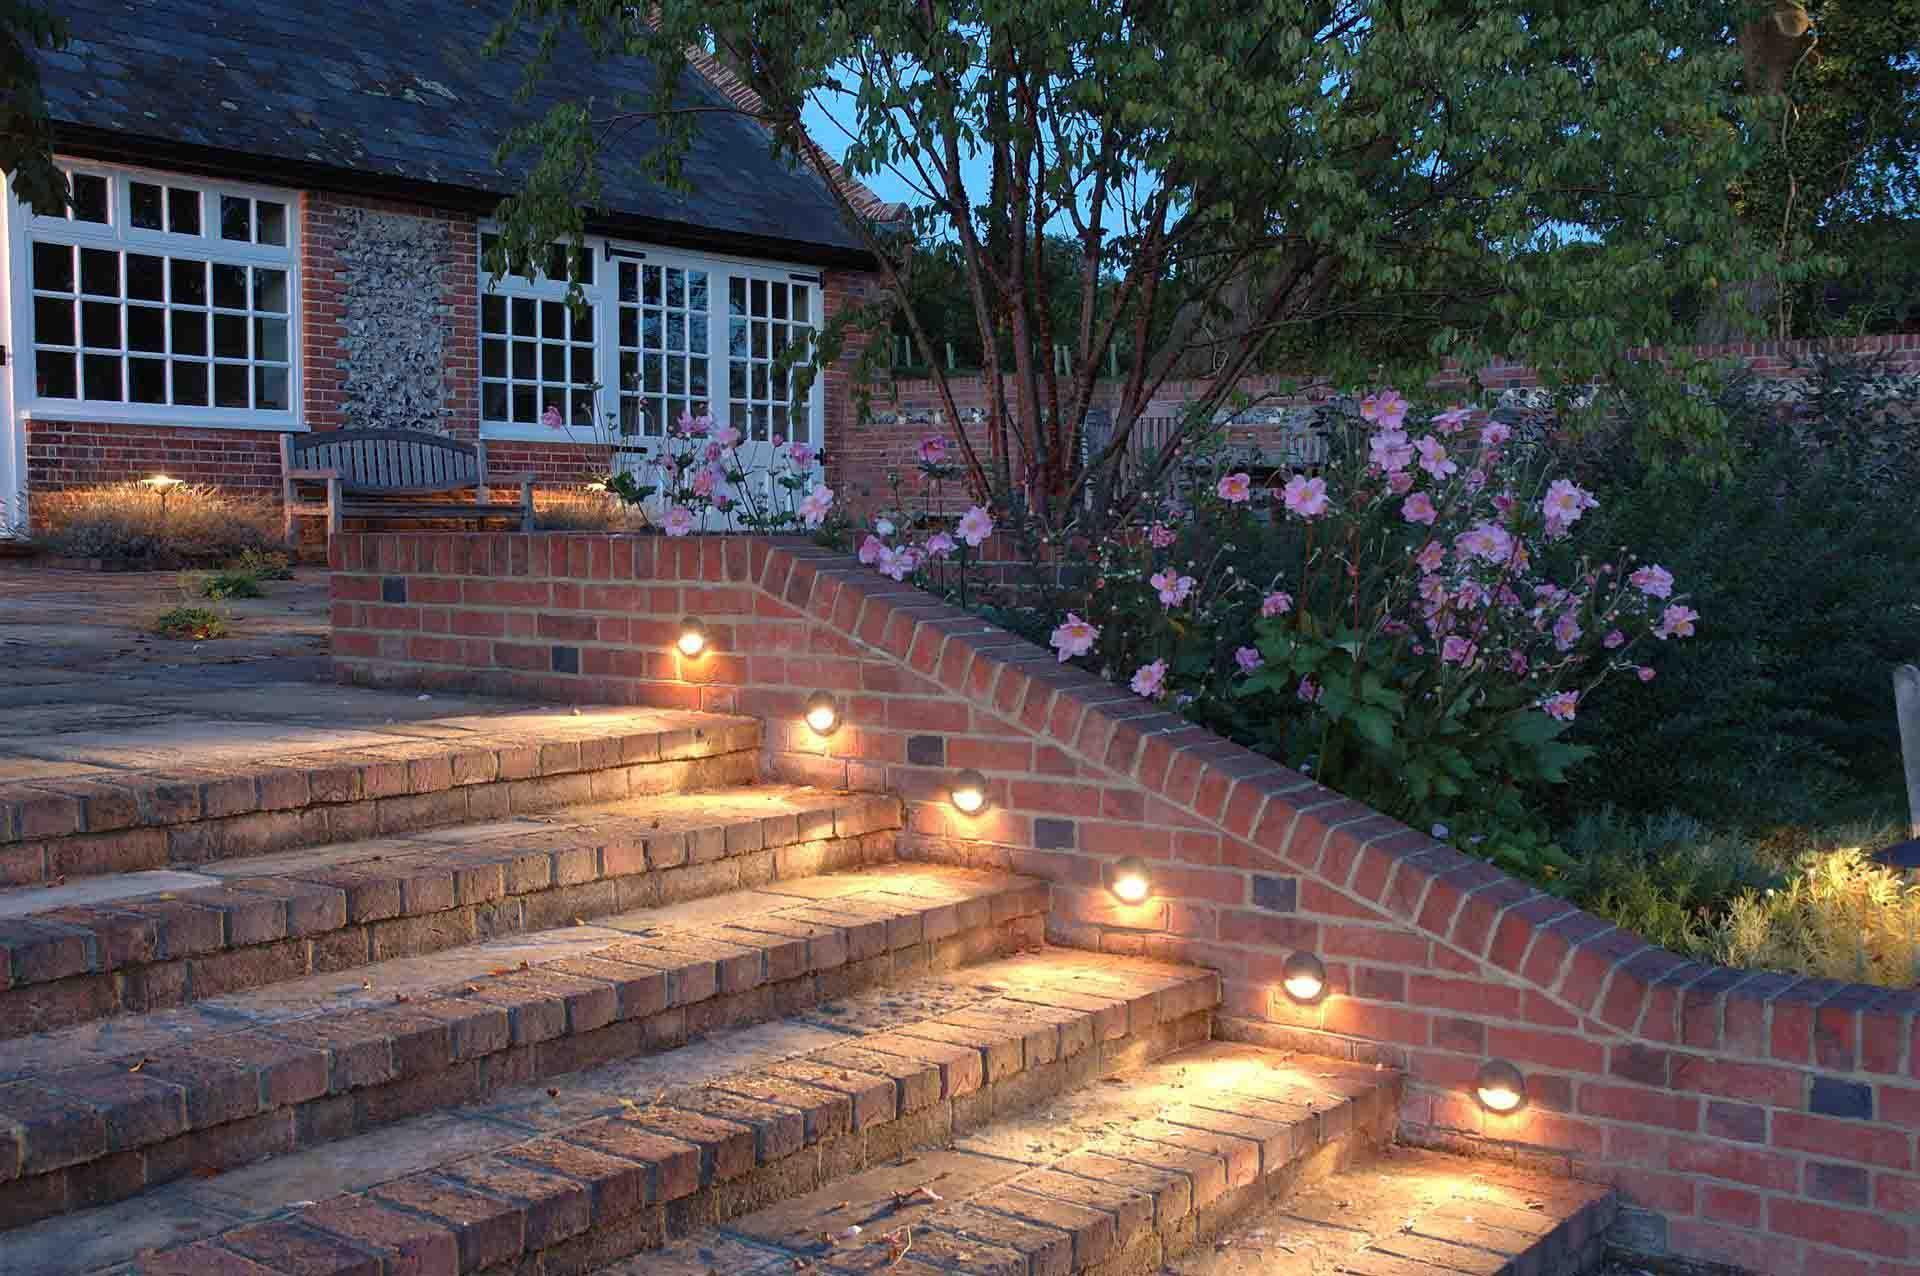 Installing Decorative Lighting Along Outdoor Walkways, Decks And Patios  Improves Visibility, Lessening The Chances That You Or Your Guests Will  Trip Or Fall ...